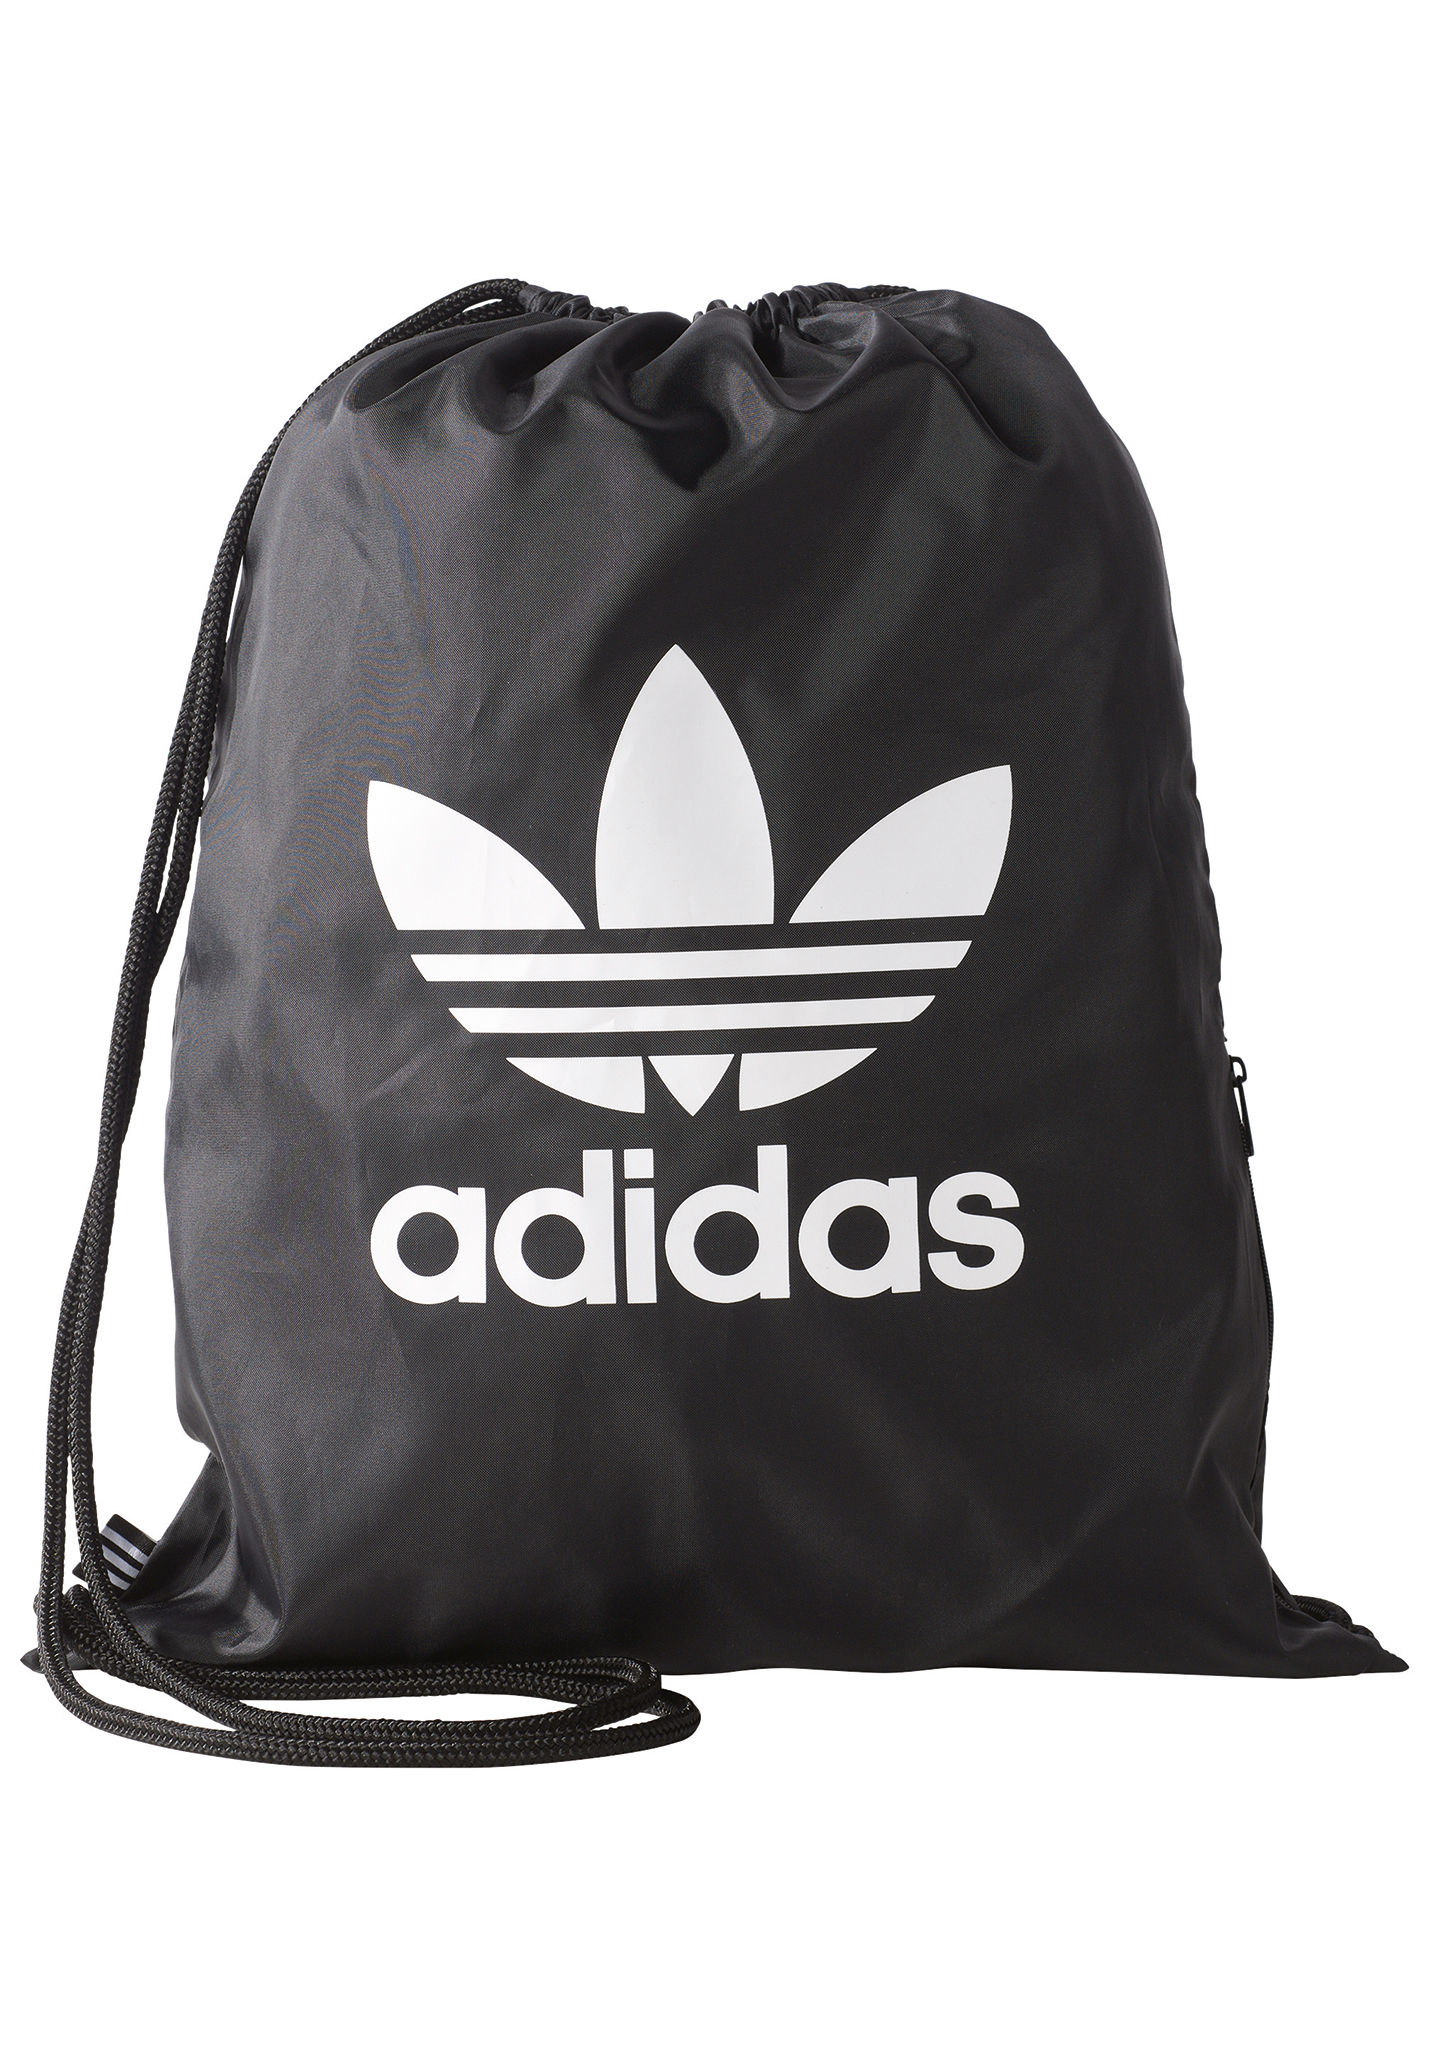 be7b4454cb ADIDAS ORIGINALS Gymsack Trefoil - Gym Bag - Black